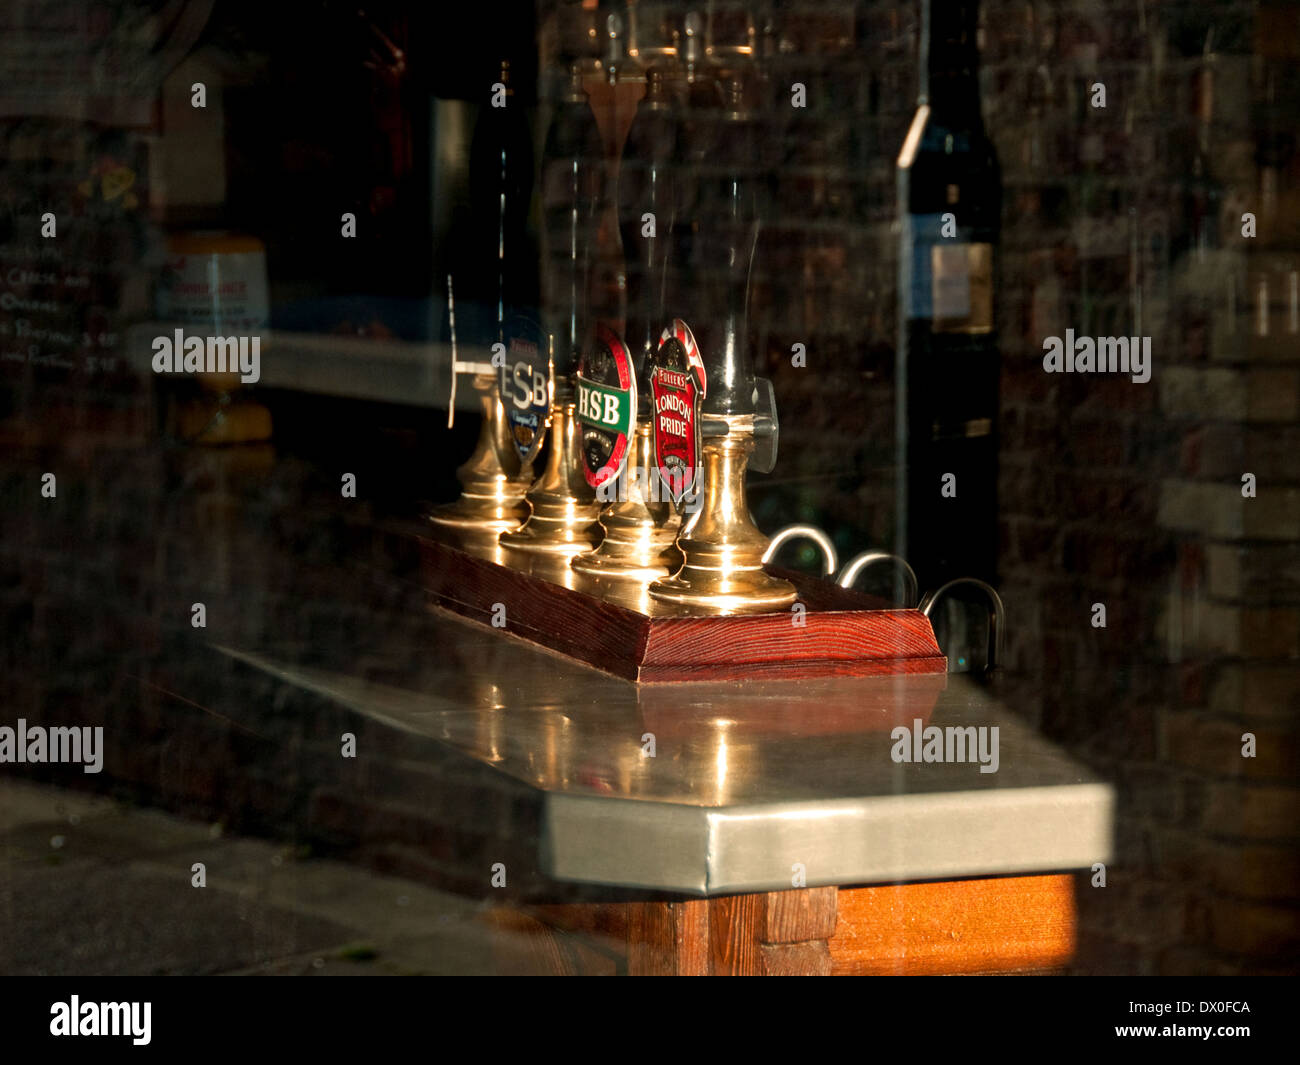 Bar with beer hand pumps - Stock Image